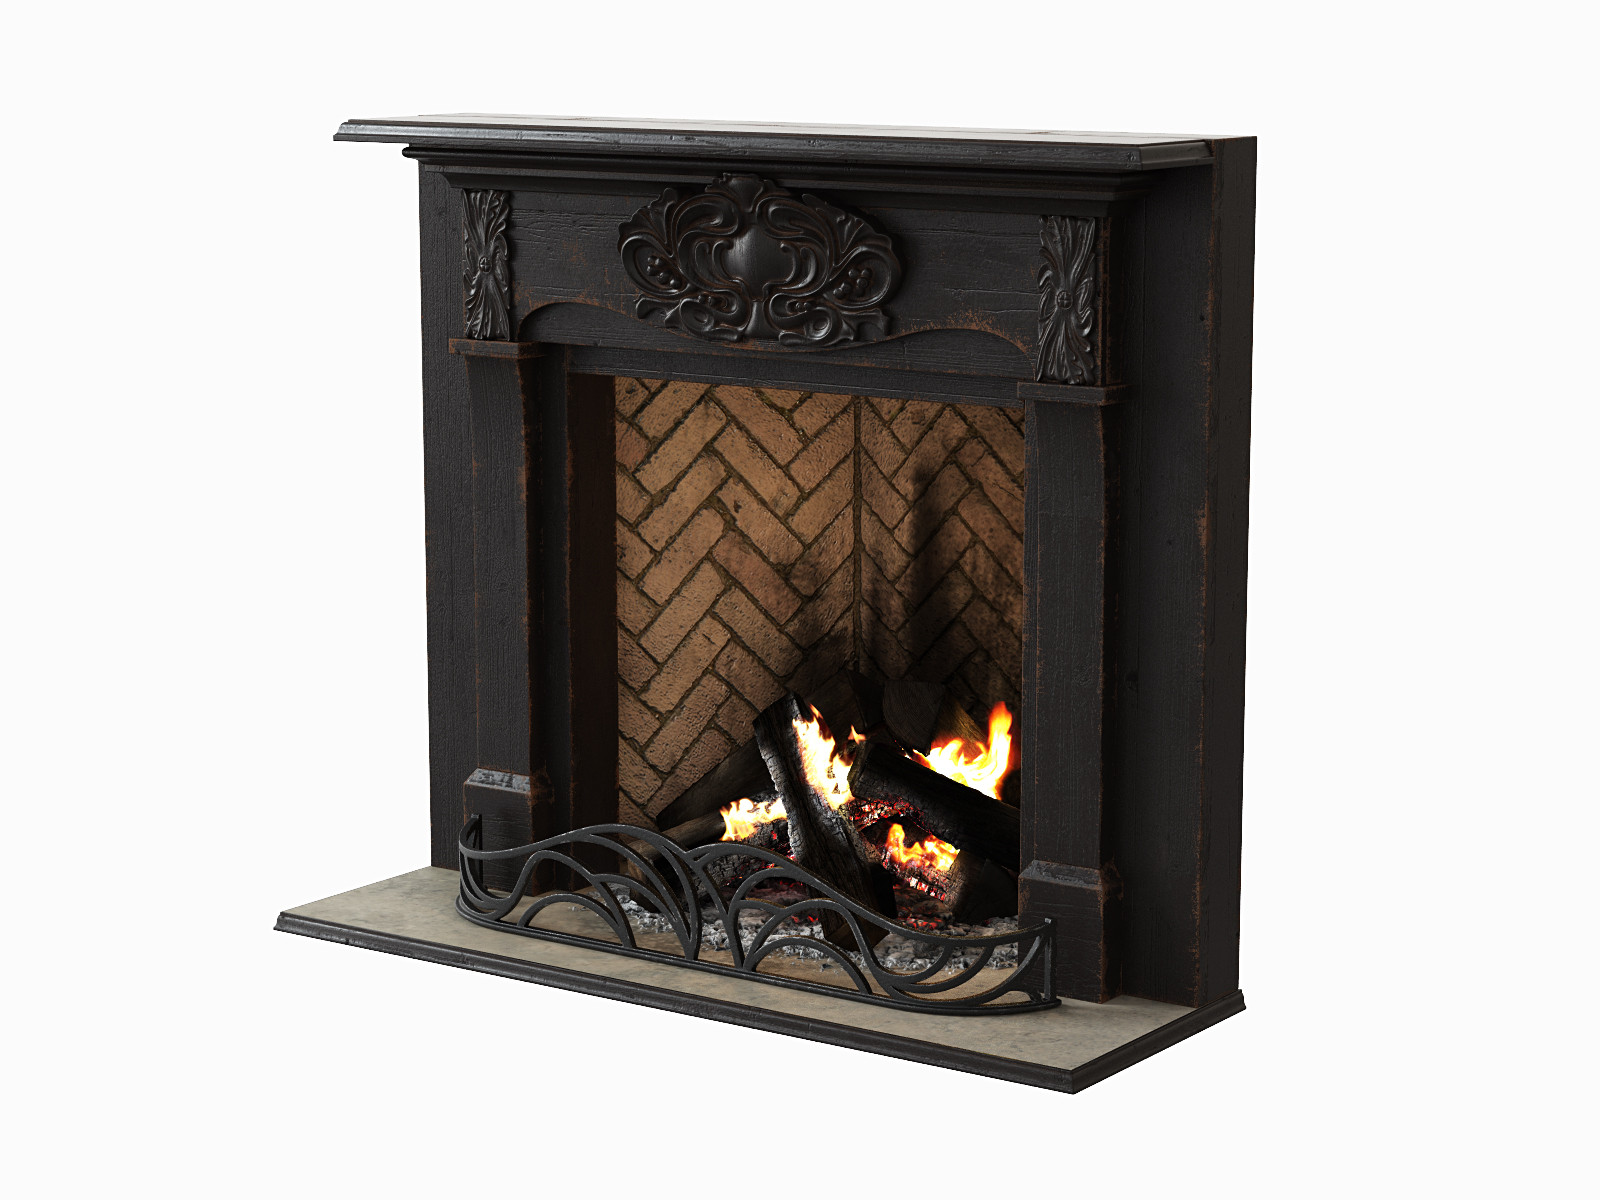 Black Wood Fireplace_01.jpg